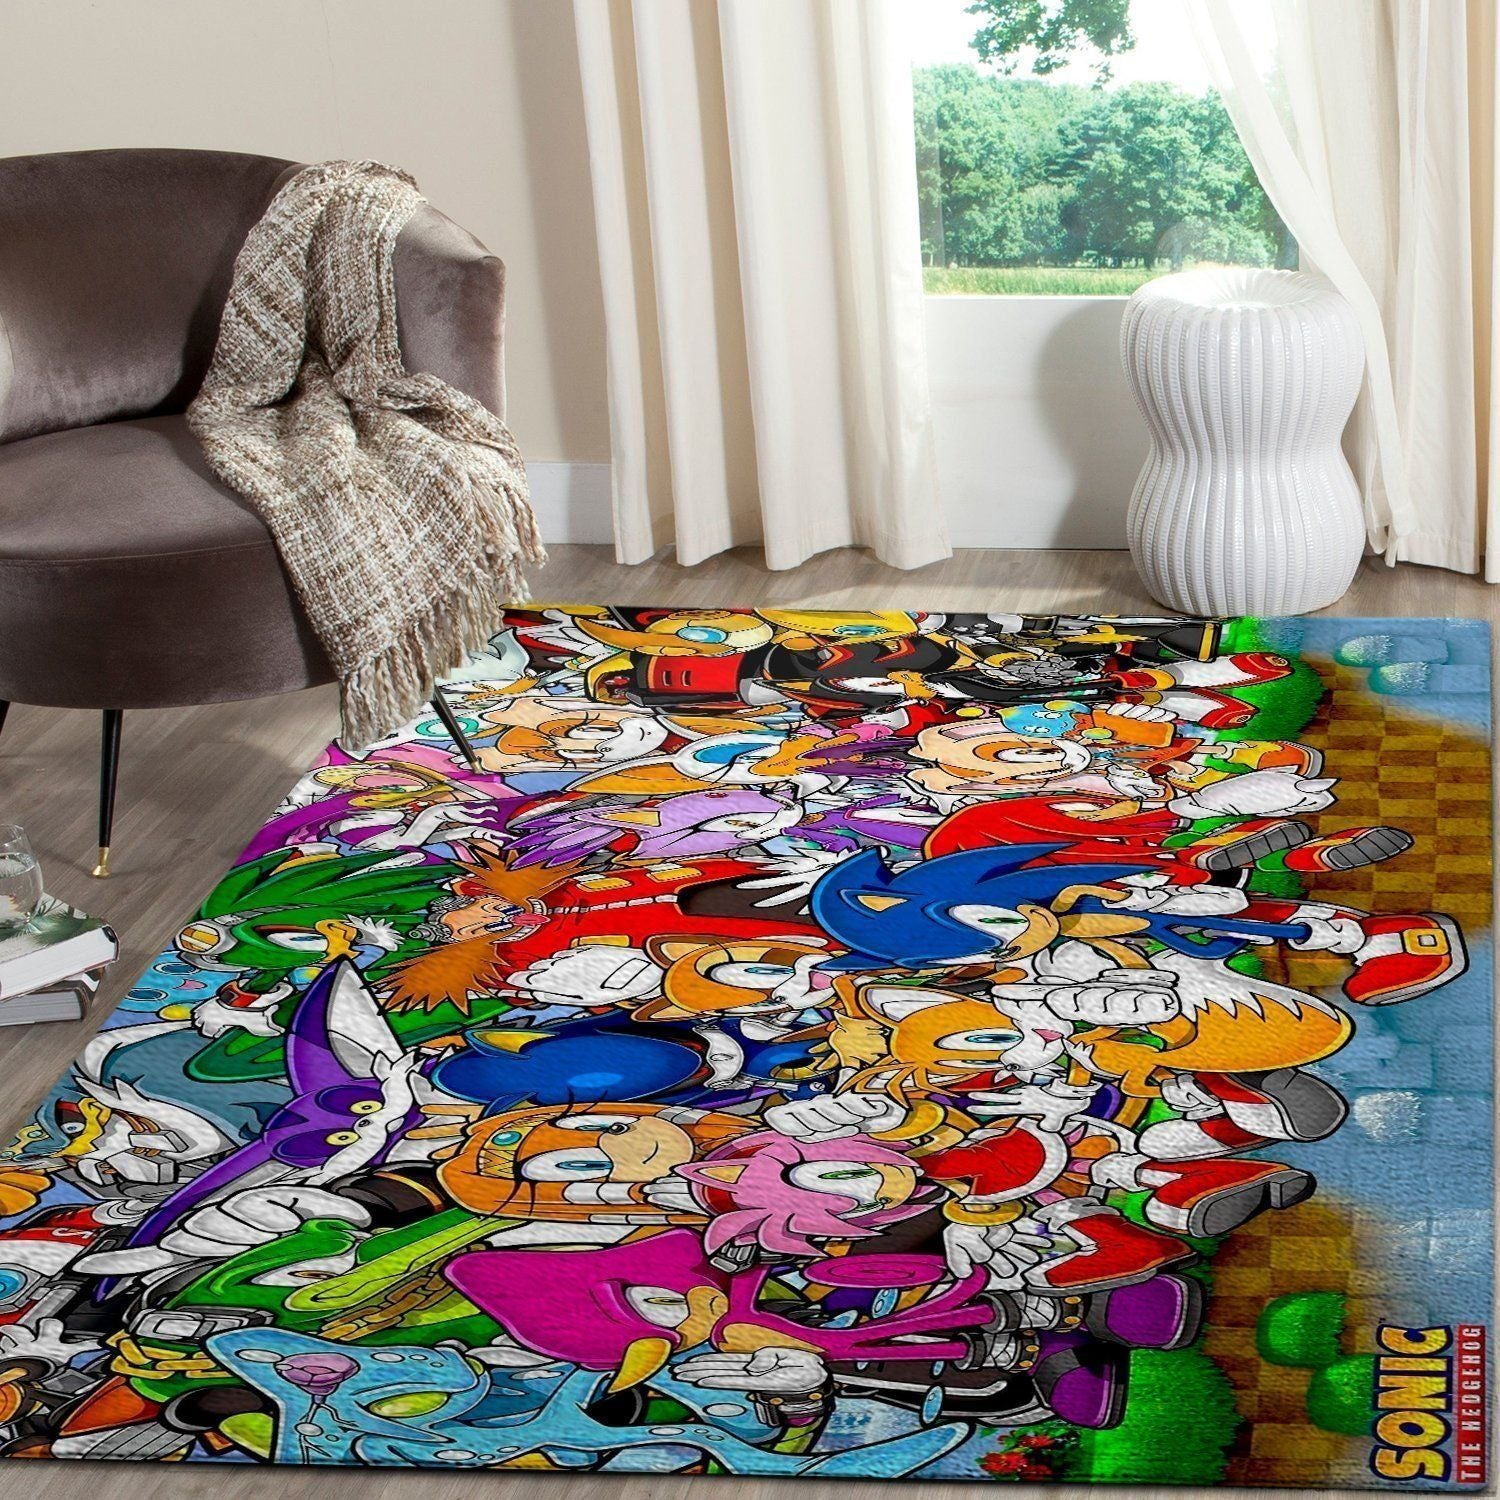 Sonic the Hedgehog Area Rug / Gaming Carpet, Gamer Living Room Rugs, Floor Decor - Characters 10111